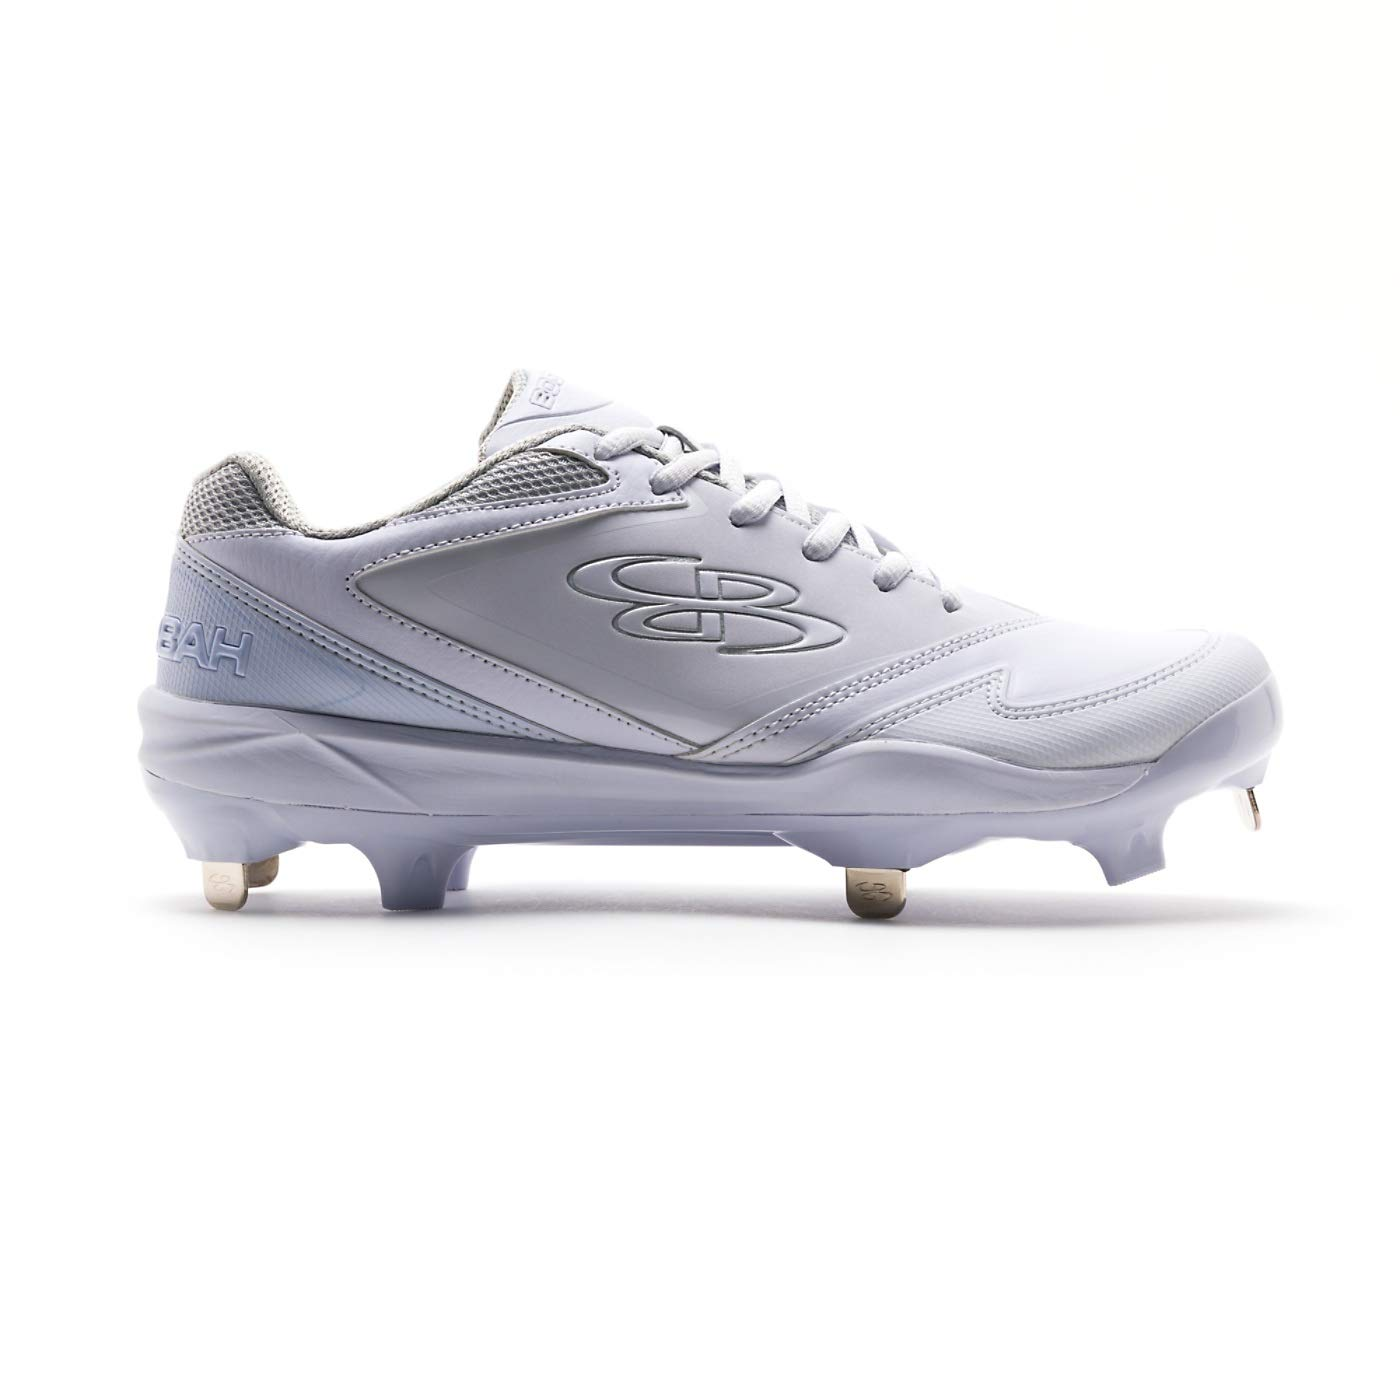 Boombah Women's A-Game Metal Cleats White/White - Size 9 by Boombah